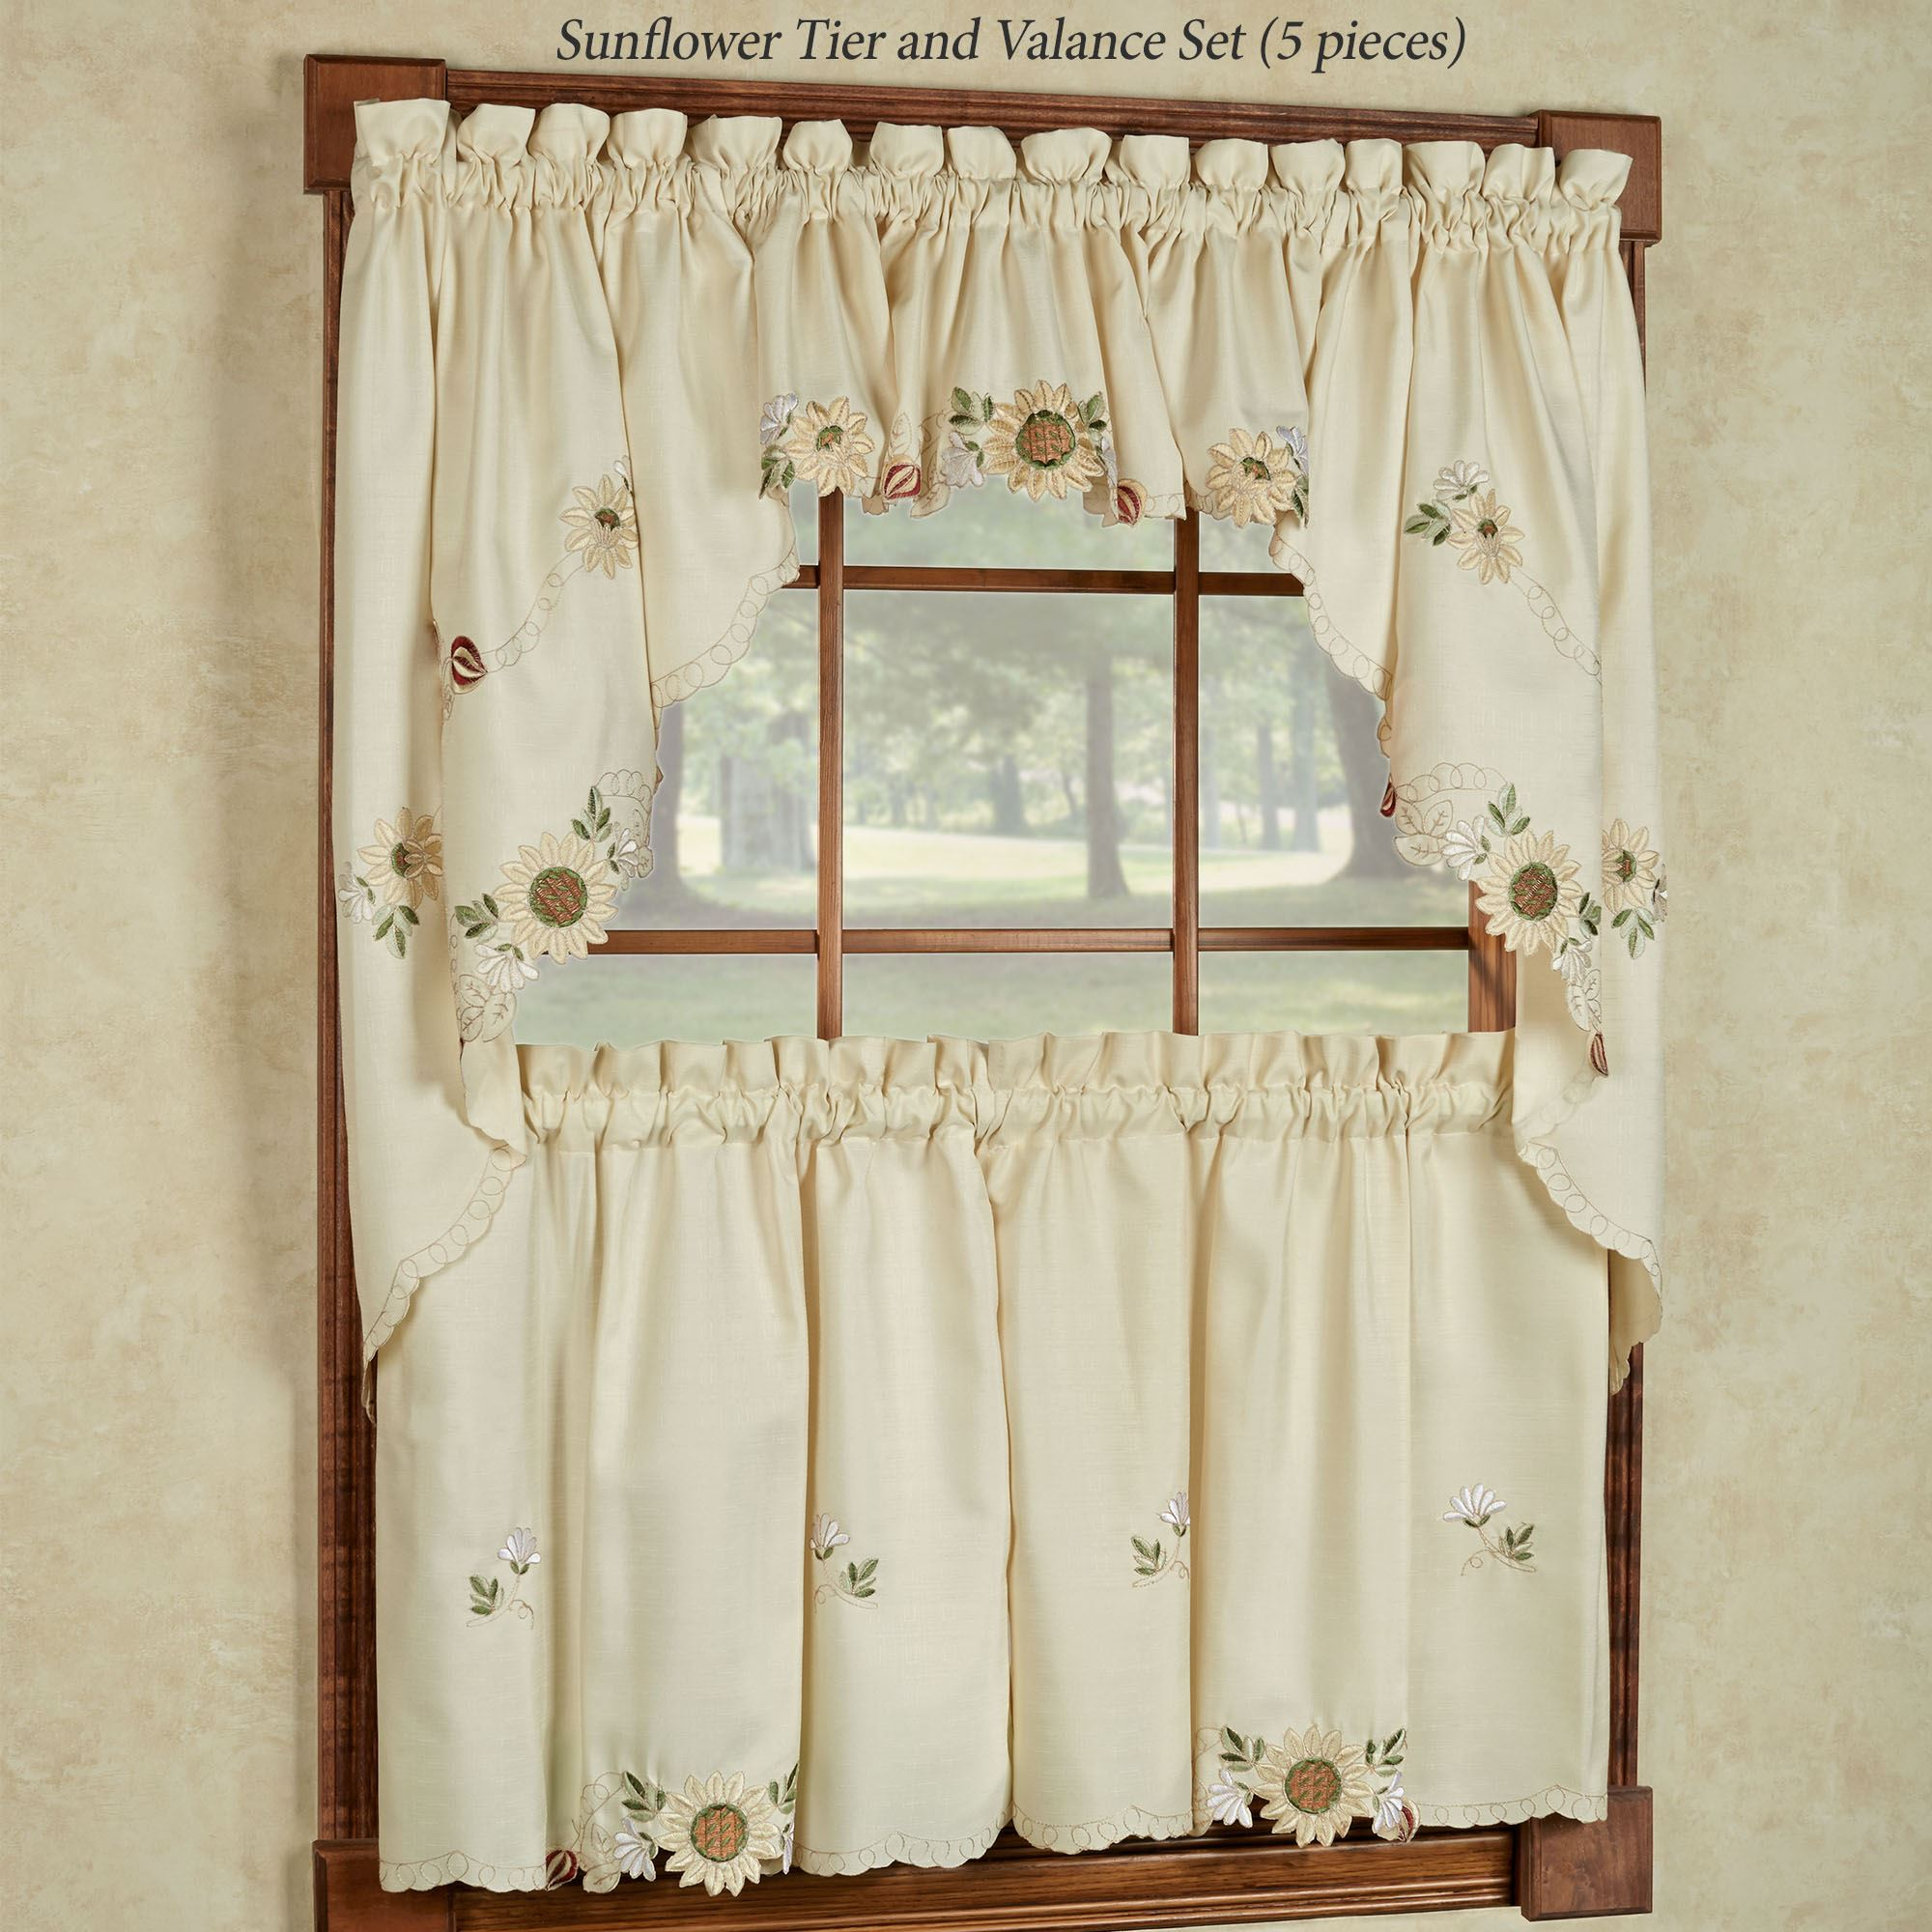 Sunflower Embroidered Tier Window Treatment